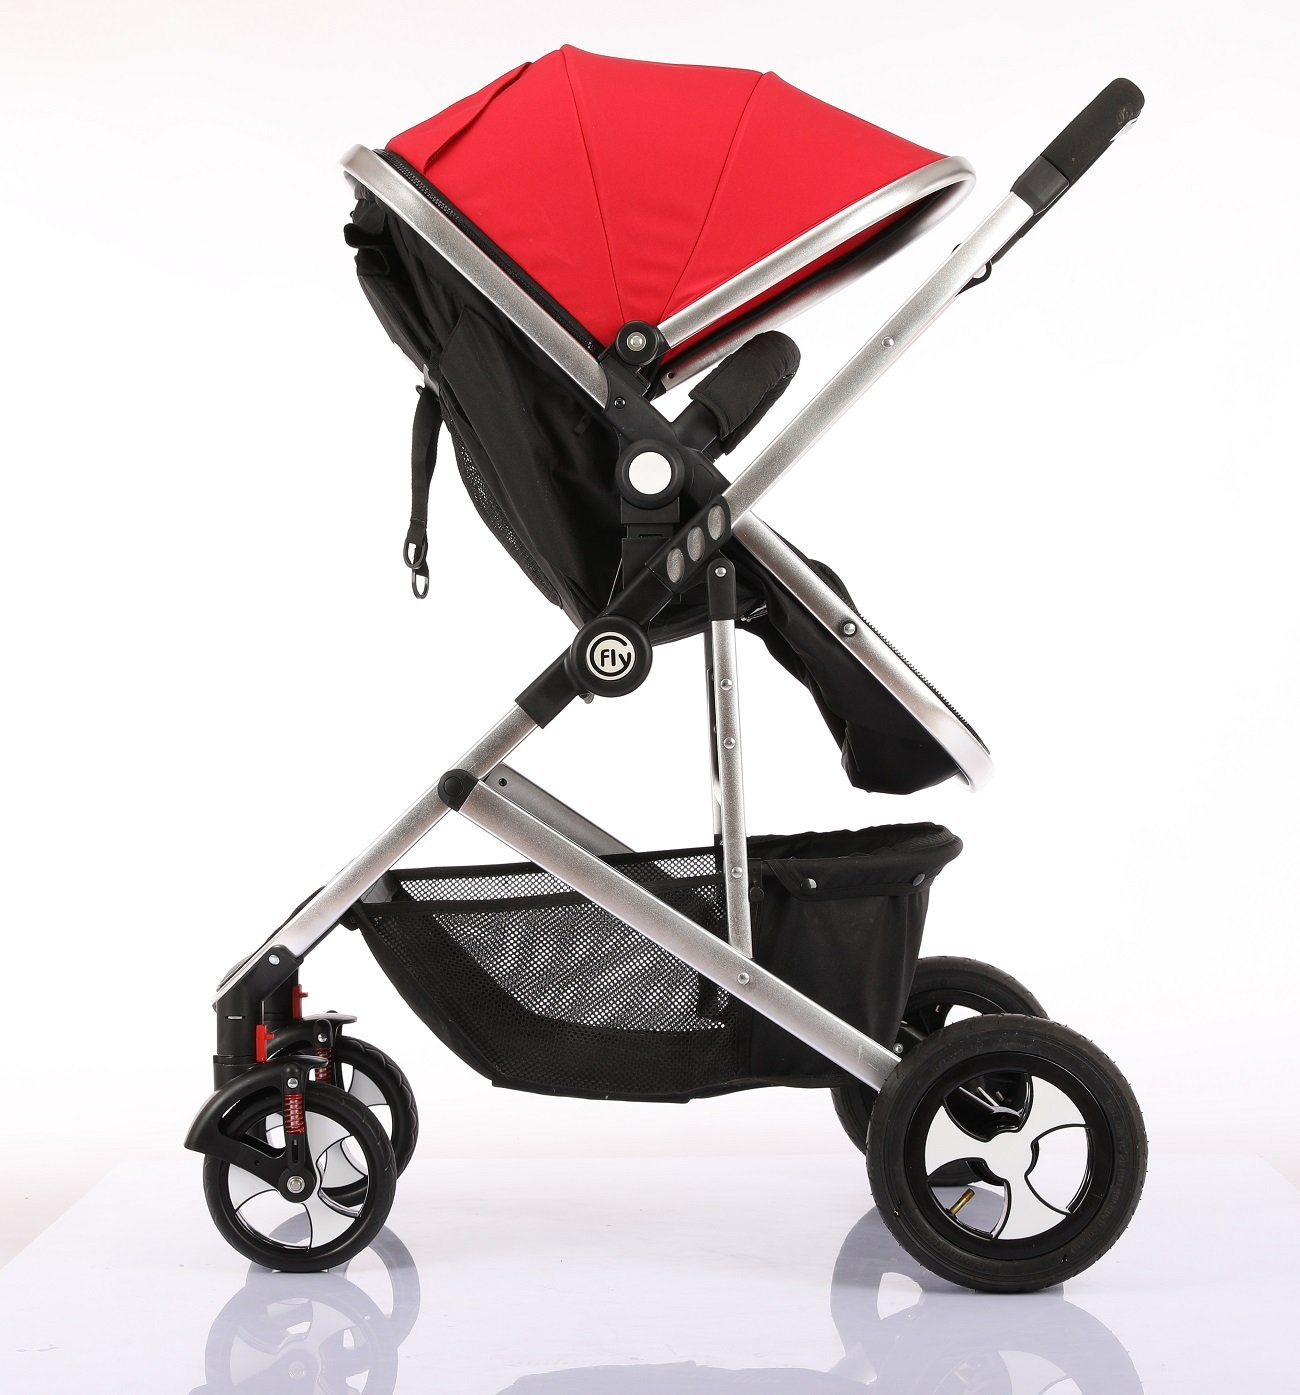 Fly Kids Pram Travel System 3 in 1 Combi Stroller Buggy Baby Child Pushchair Reverse or Forward facing Rain Cover Mosquito Net Bottle Holder Foldable with FootMuff Econo Direct Ltd